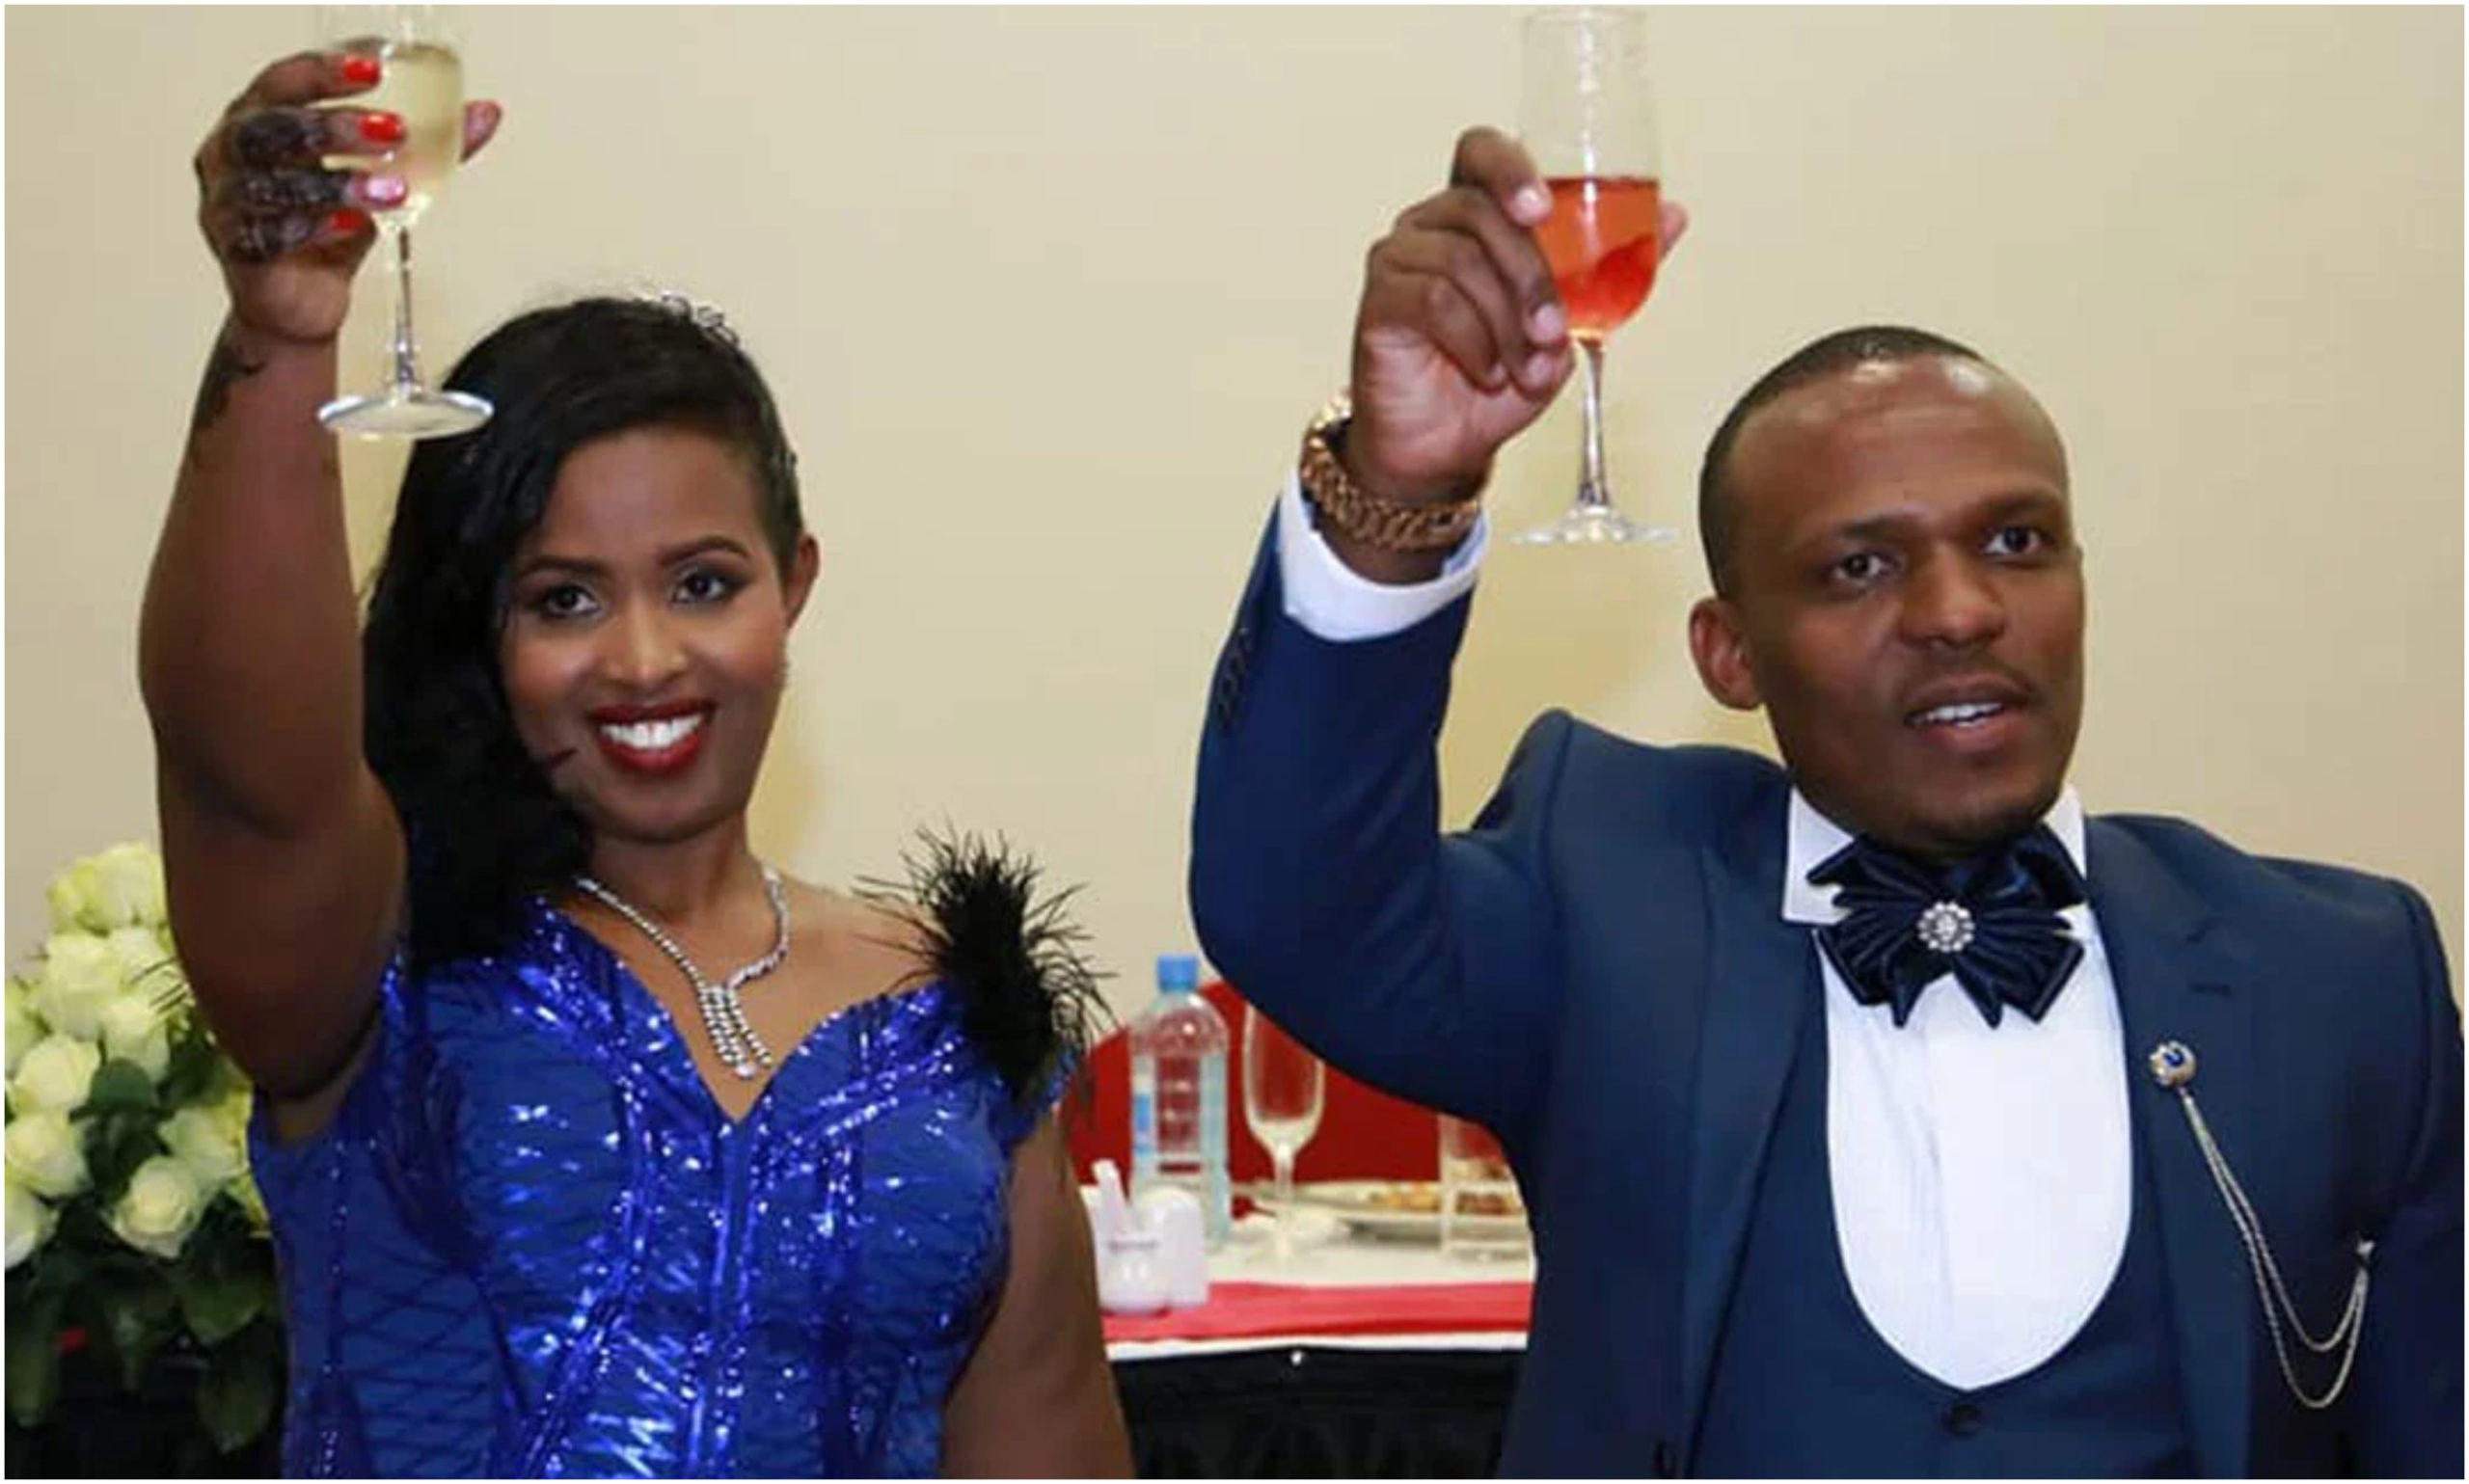 """Rona is real!"" Ben Kitili and wife celebrate 2 years' wedding anniversary in quarantine after COVID-19 infection"